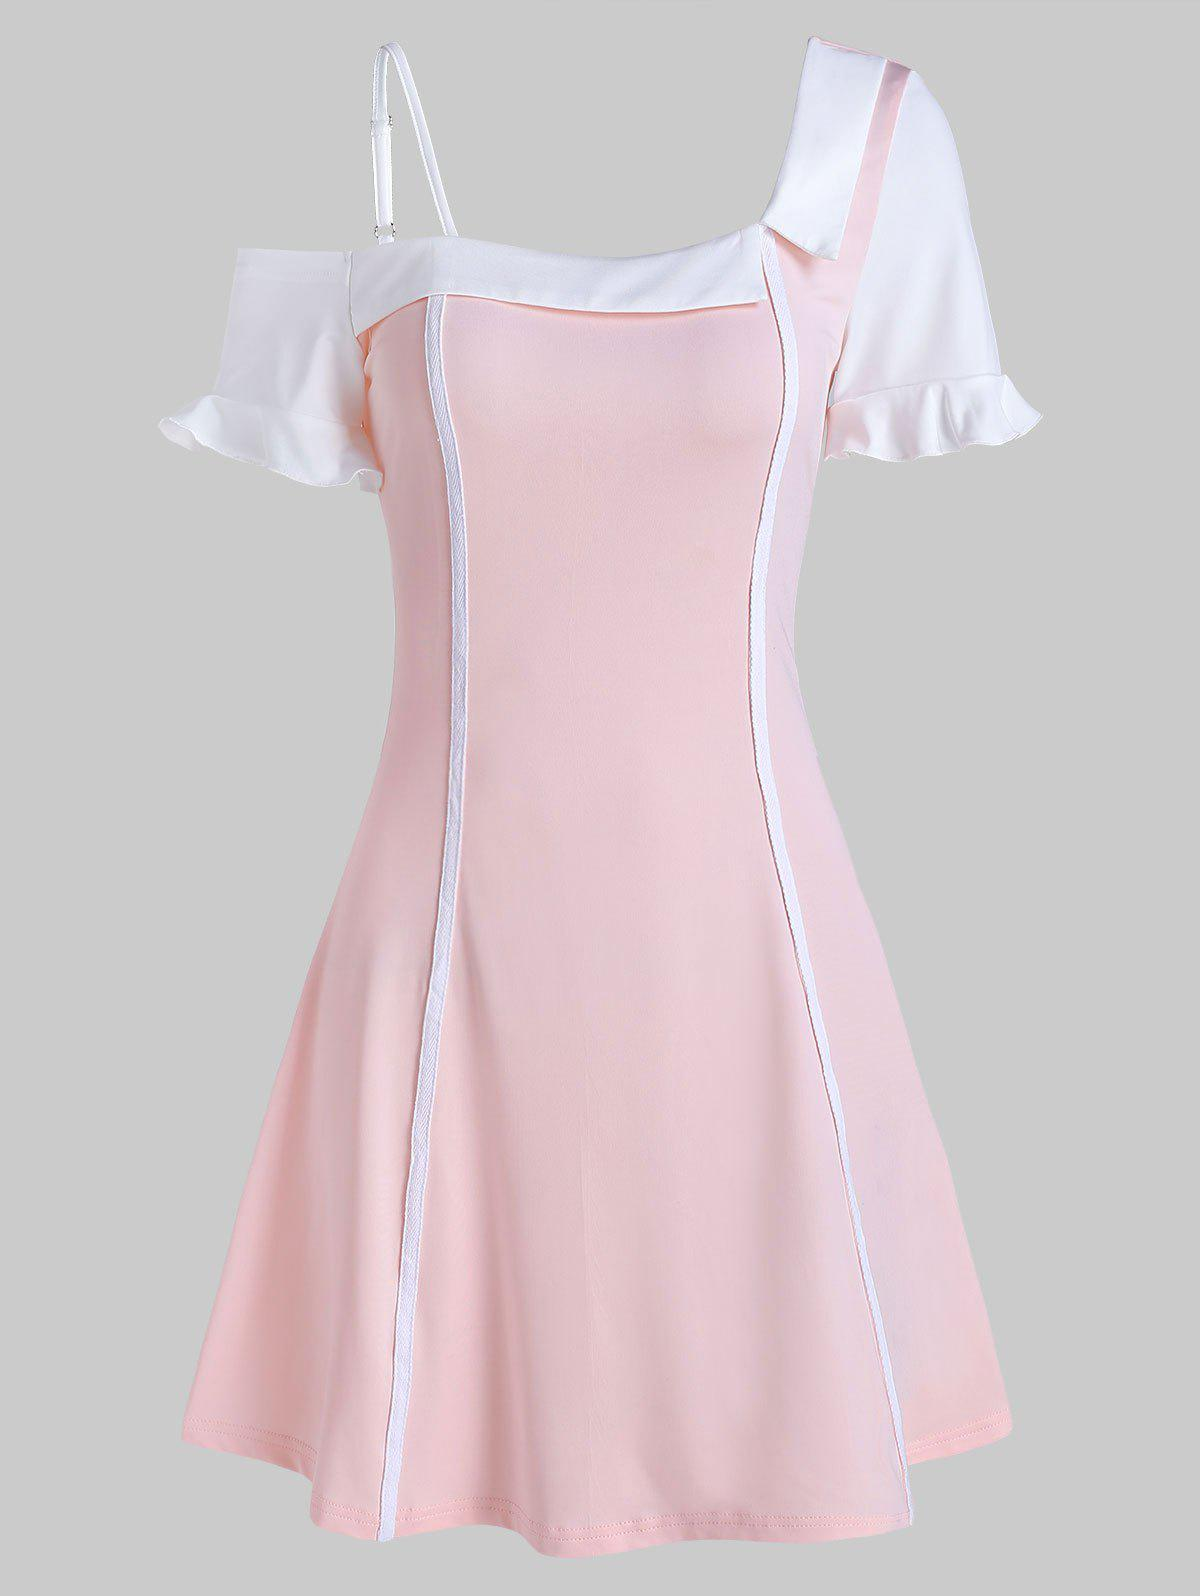 Skew Neck Ruffled Mini A Line Dress - SAKURA PINK 3XL